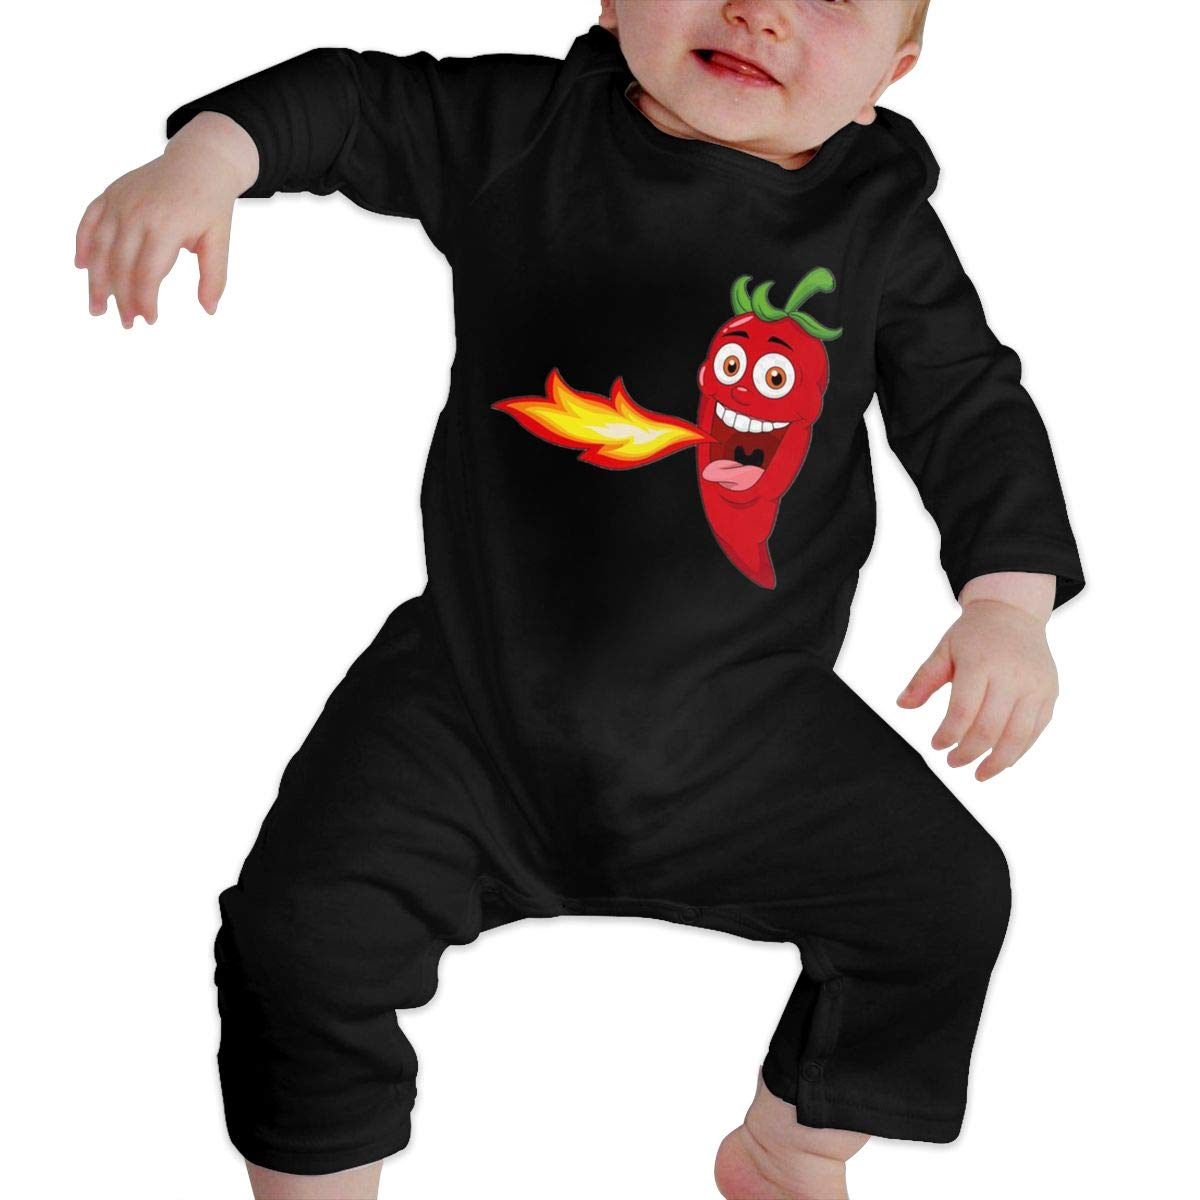 Fasenix Cartoon Chili Fire Newborn Baby Boy Girl Romper Jumpsuit Long Sleeve Bodysuit Overalls Outfits Clothes